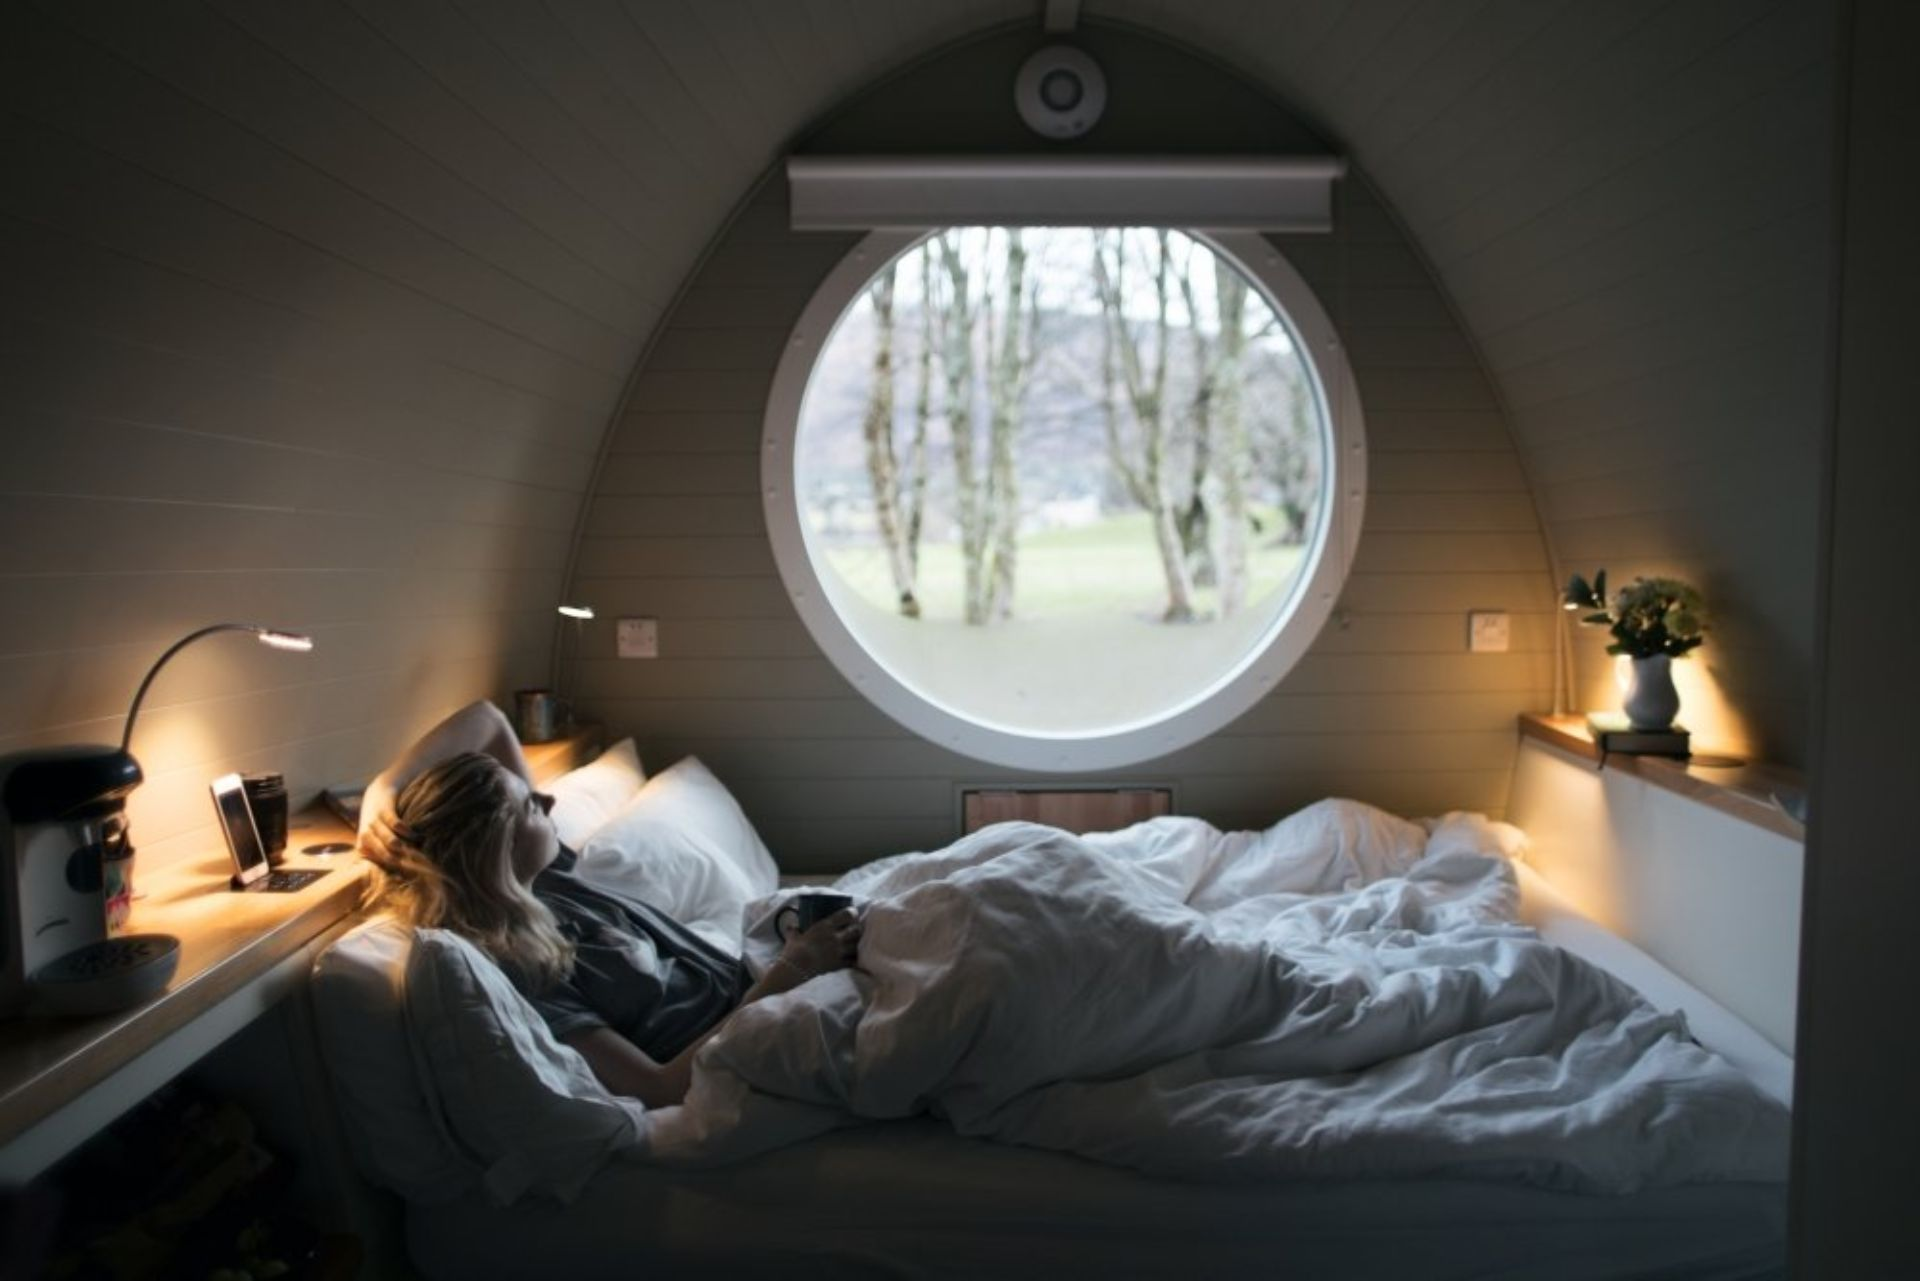 blonde-woman-lying-in-bed-in-glamping-pod-looking-out-of-a-round-window-riverbeds-lodge-glencoe-glamping-with-hot-tub-in-scotland